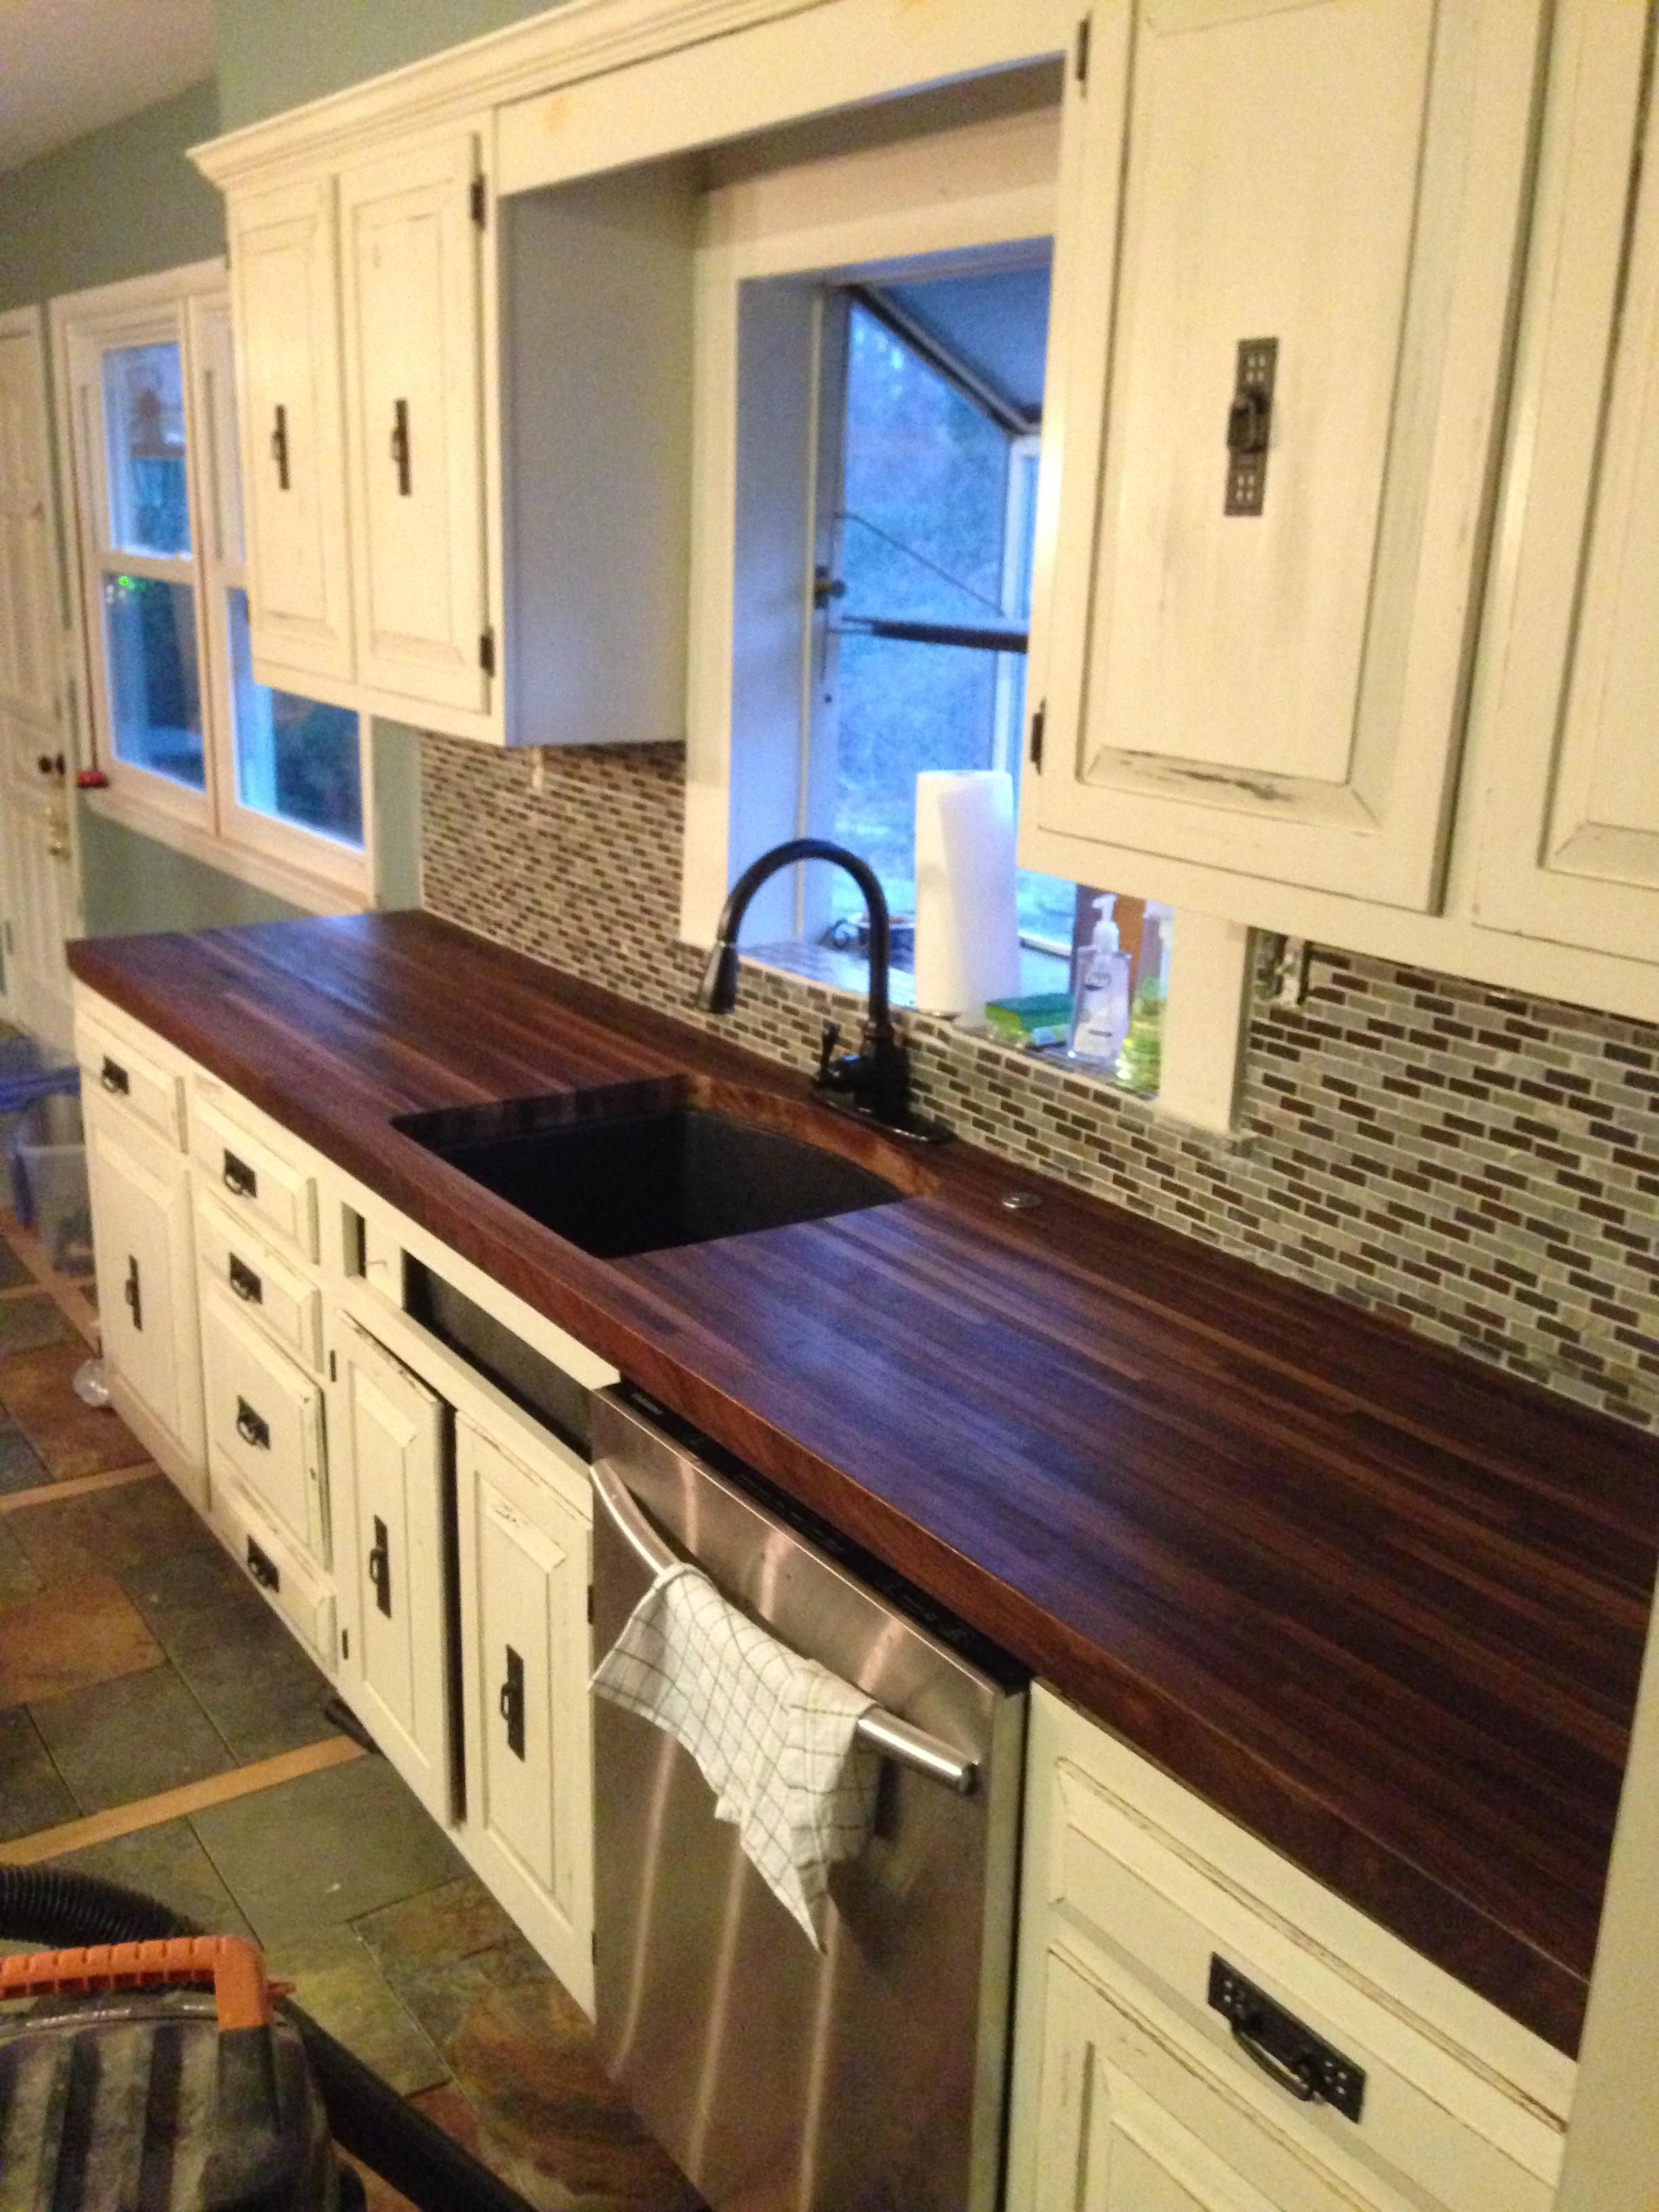 img countertops countertop we butchers and with butcher block steel vinegar how our wool stained